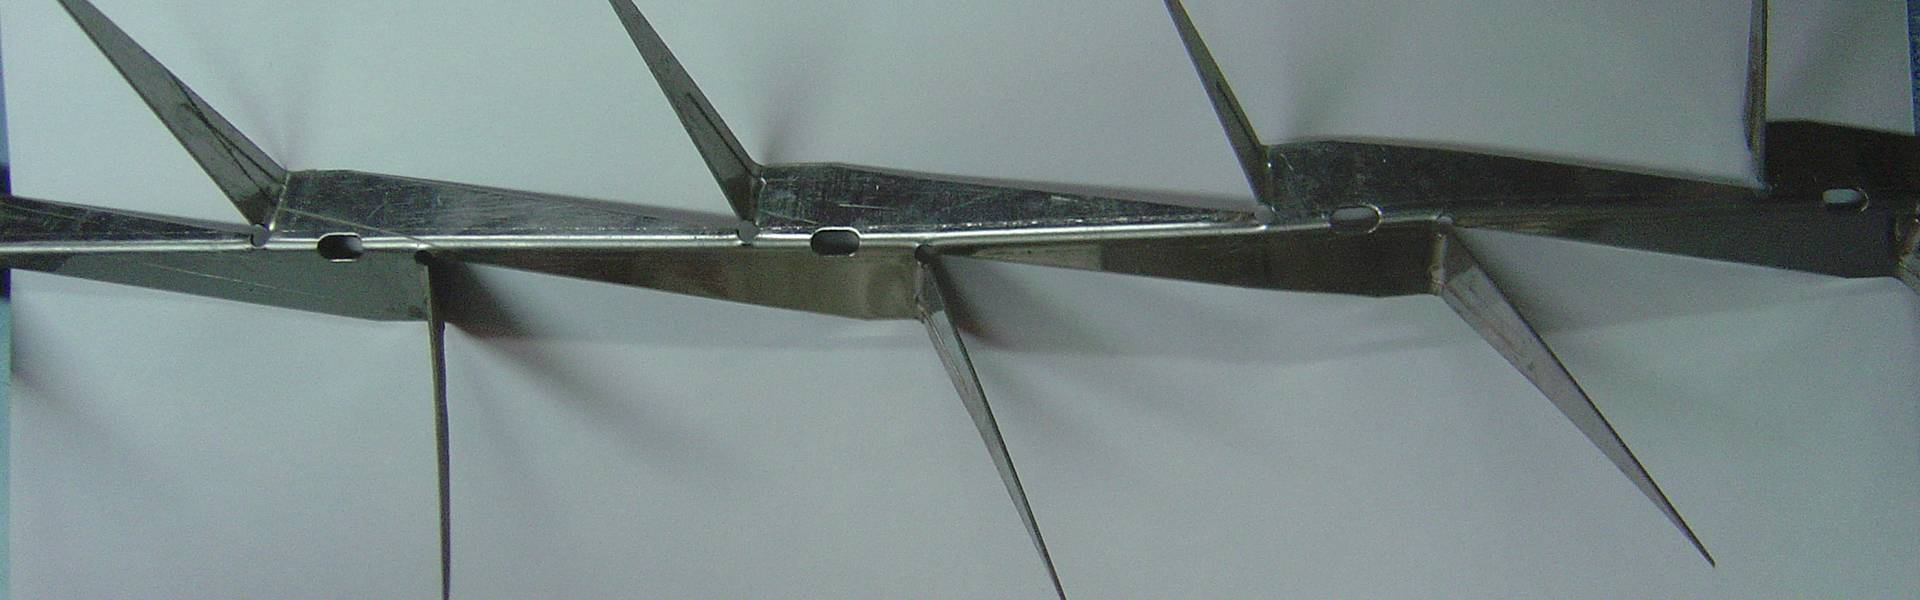 A piece of stainless steel wall spike with middle size sharp spikes.